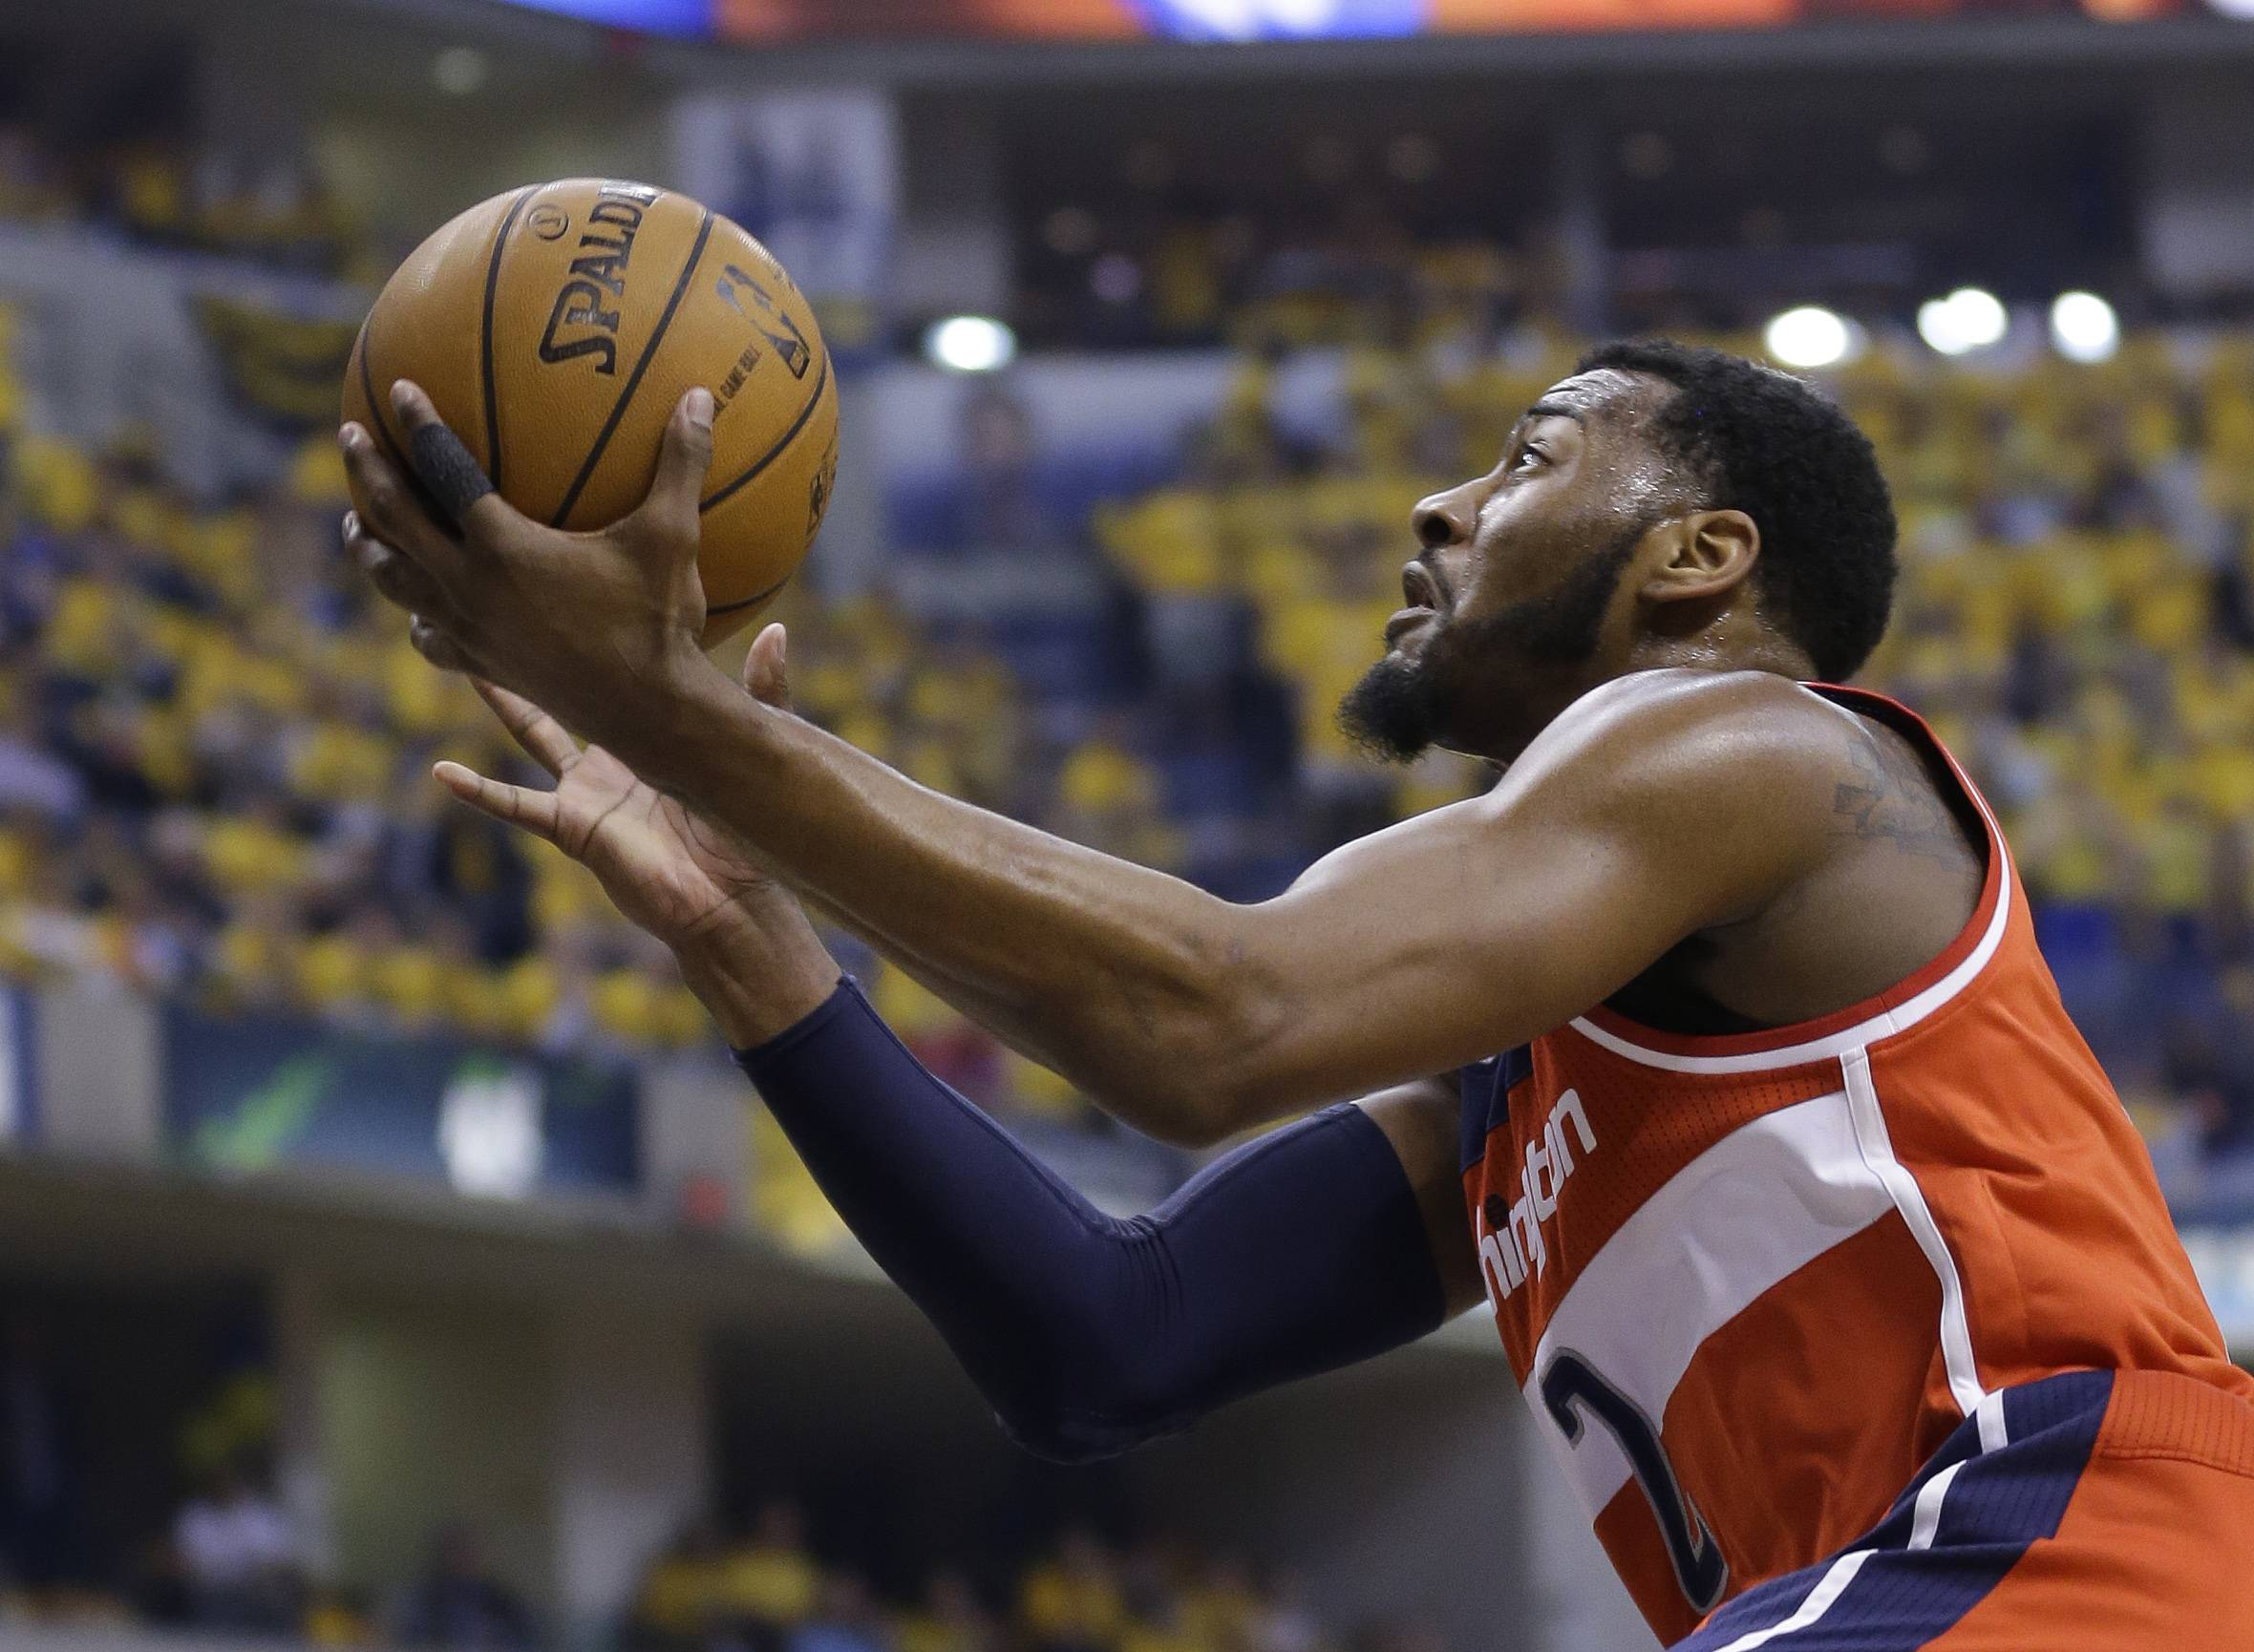 Washington Wizards' John Wall (2) puts up a shot during the first quarter of game 1 of the Eastern Conference semifinal NBA basketball playoff series against the Indiana Pacers in Indianapolis, Monday, May 5, 2014.